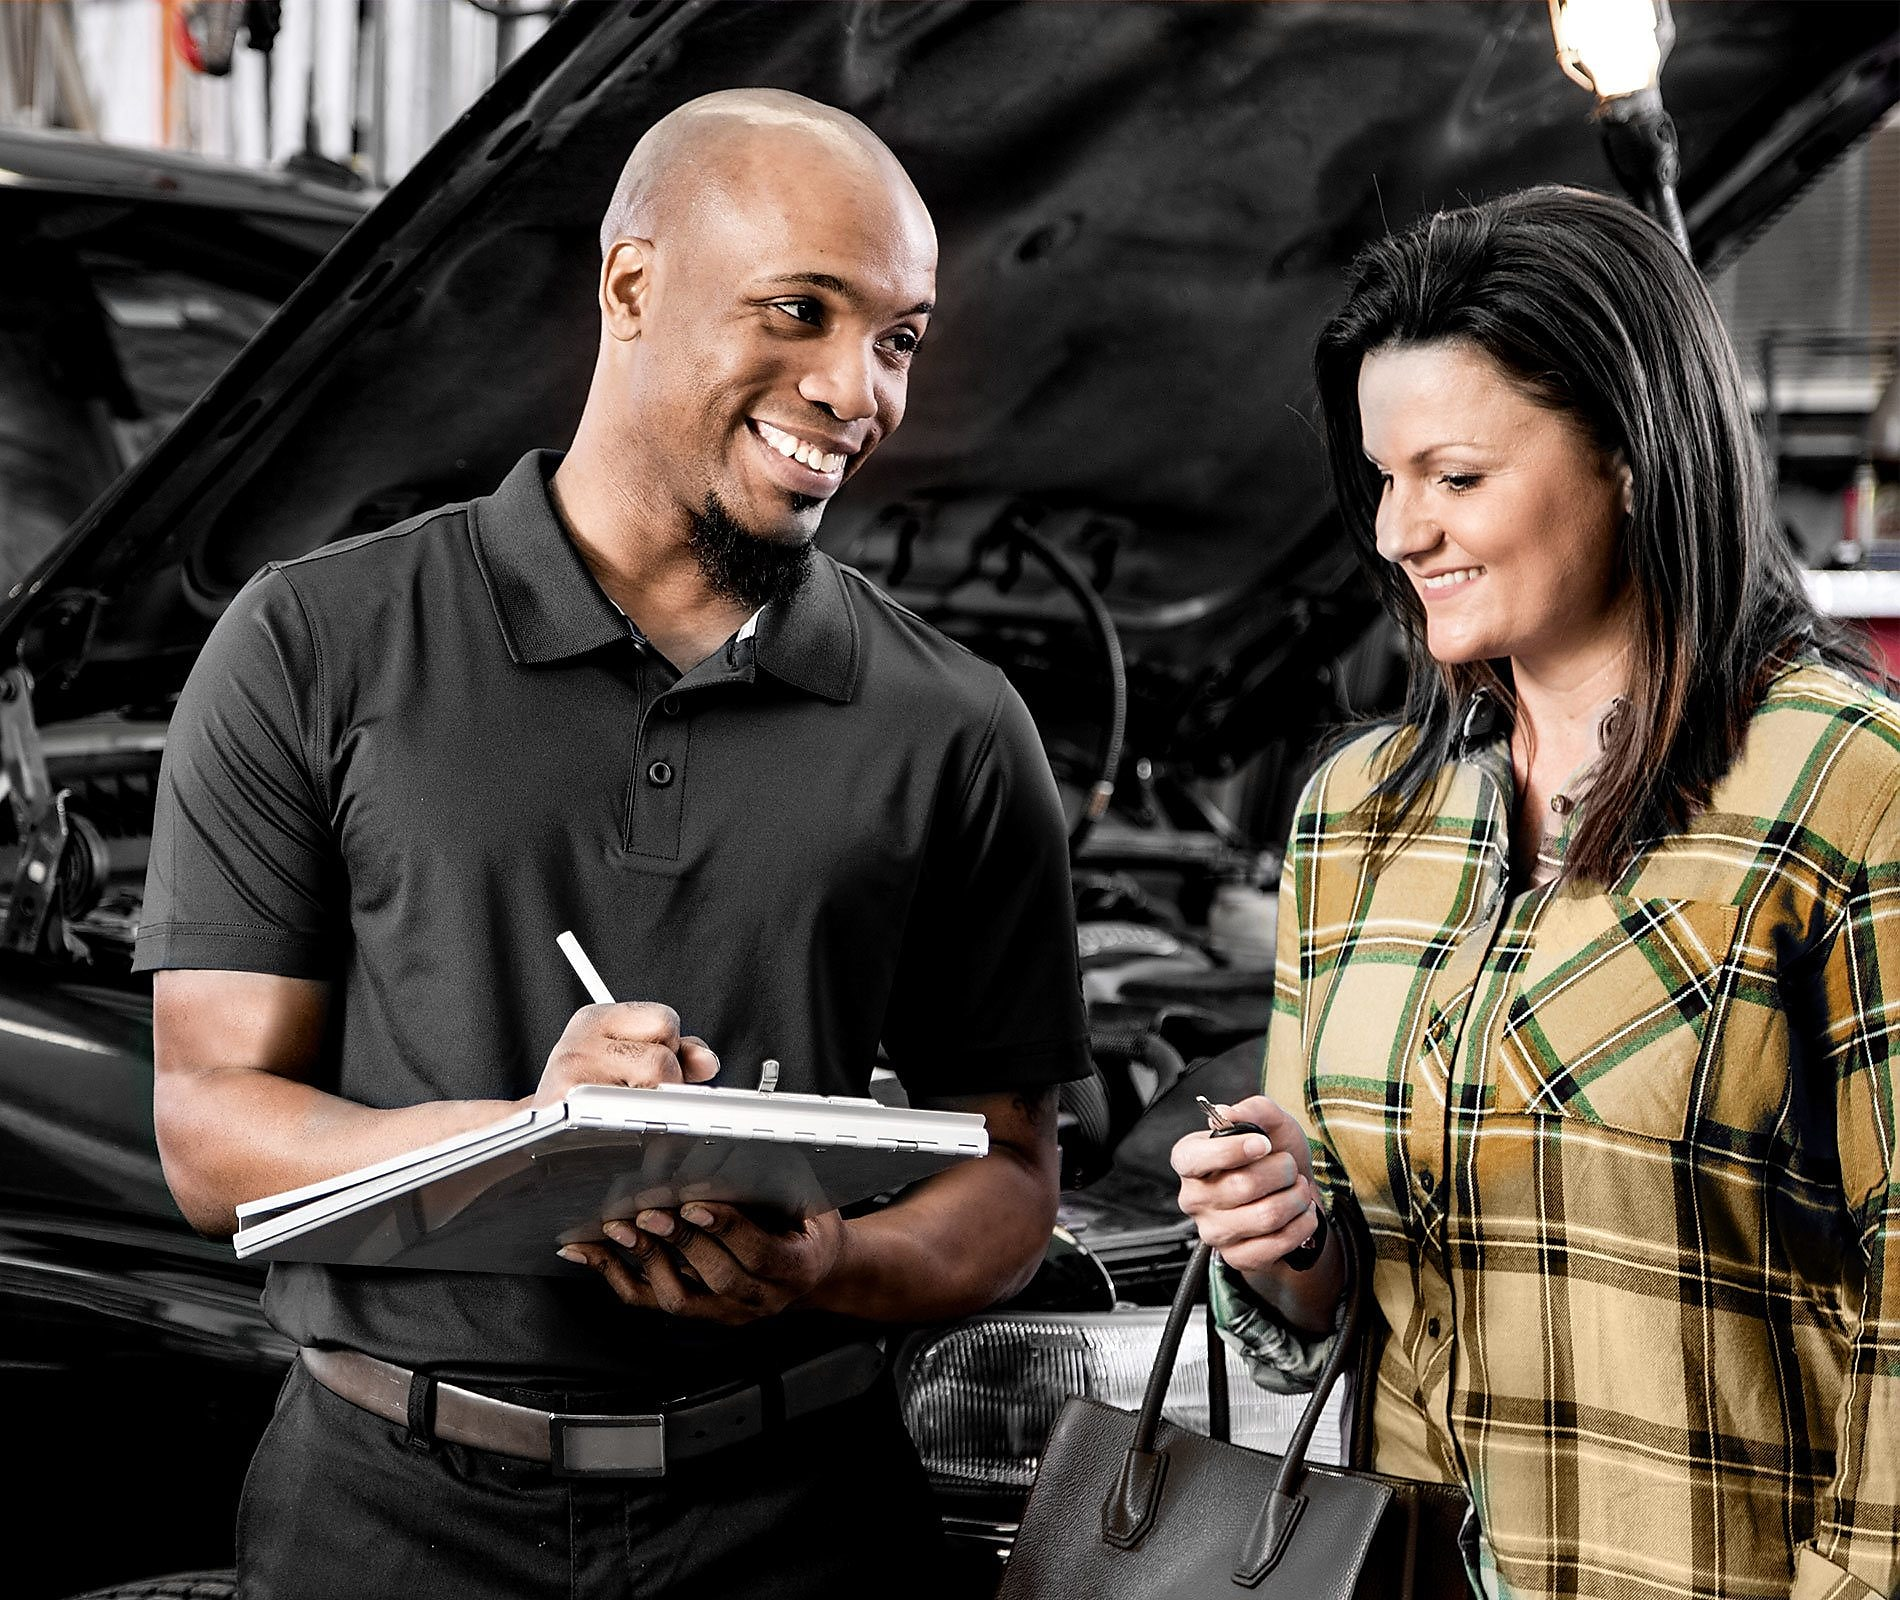 Closest Place To Get Oil Change >> Oil Change Retail Locations Near Me United States